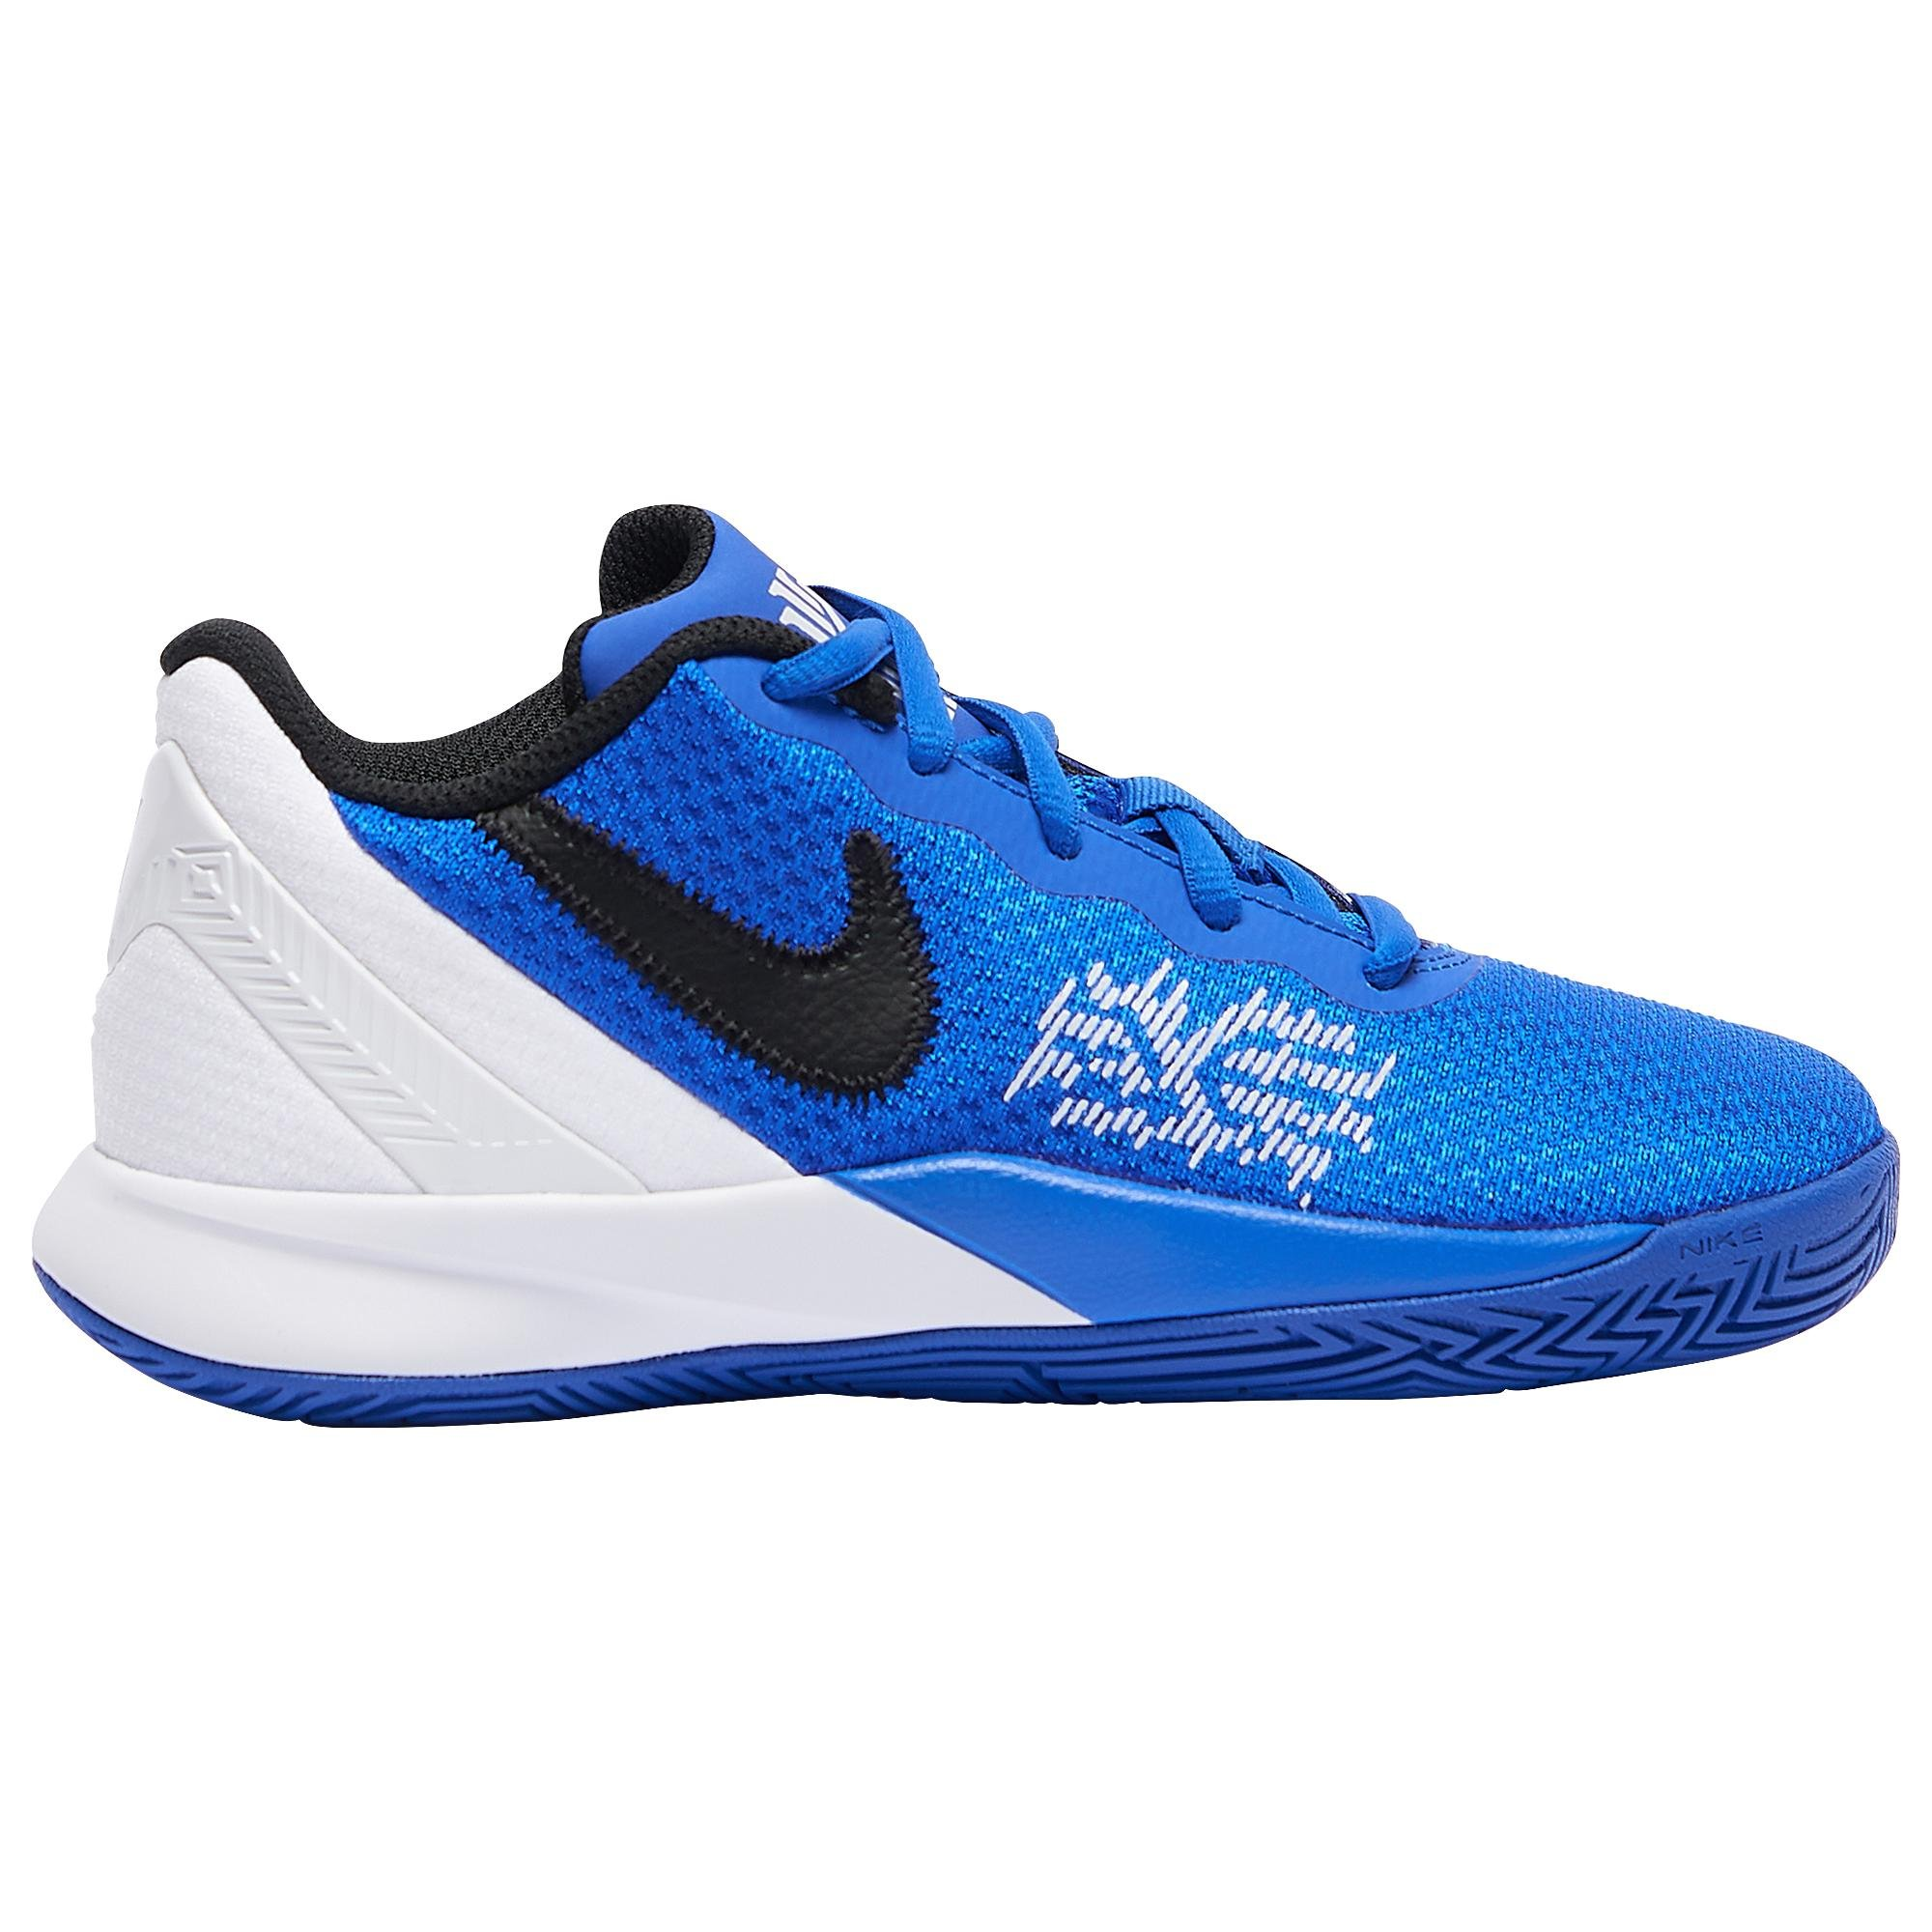 304f664a60bfd Men's Blue Kyrie Flytrap Ii Basketball Shoes